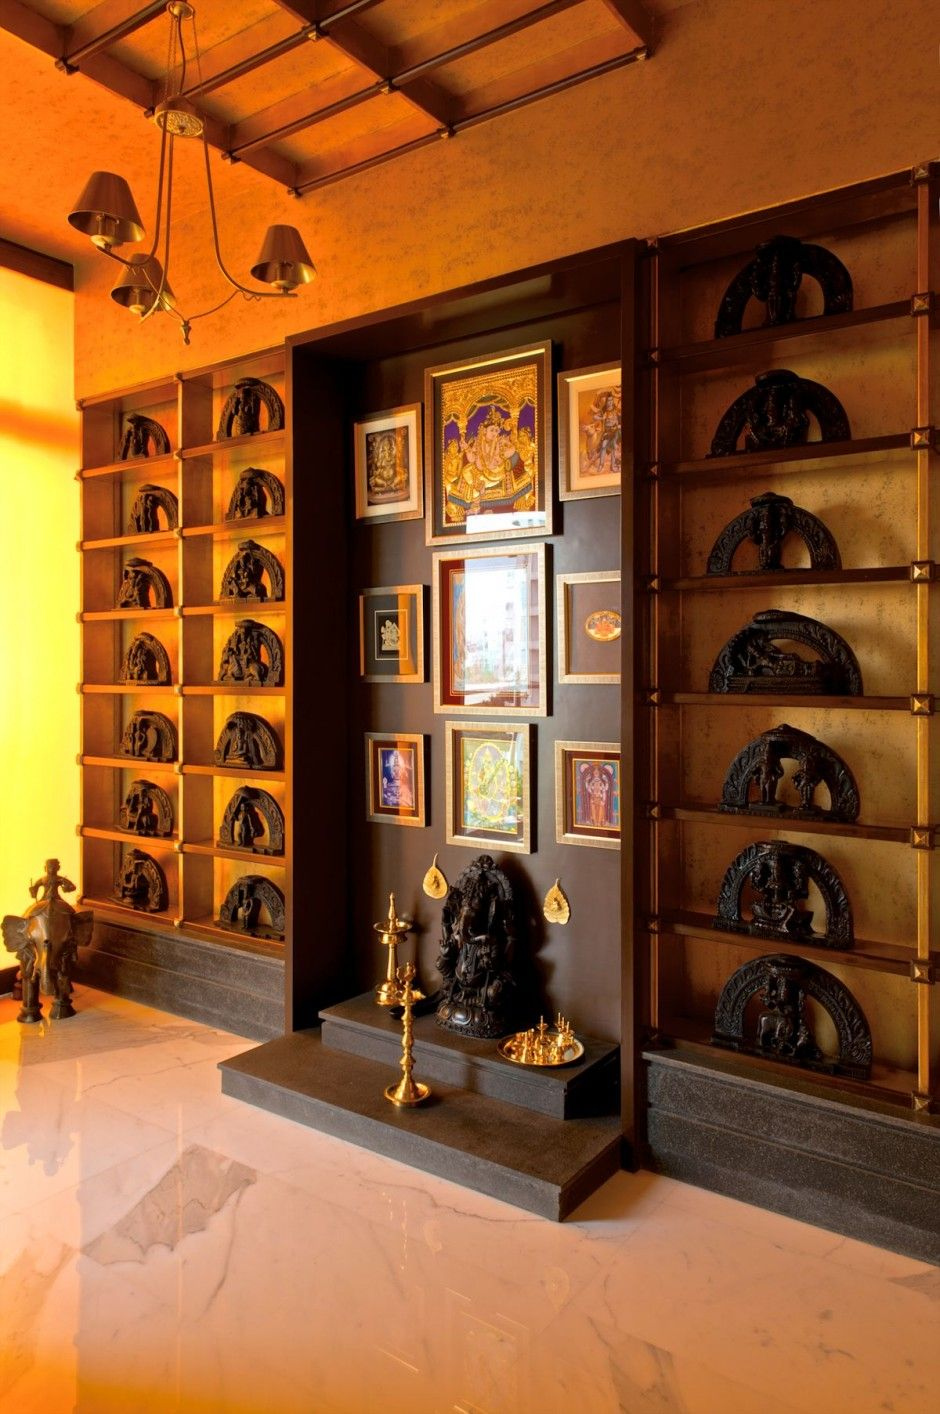 14 inspirational pooja room ideas for your home woods for Apartment design standards india